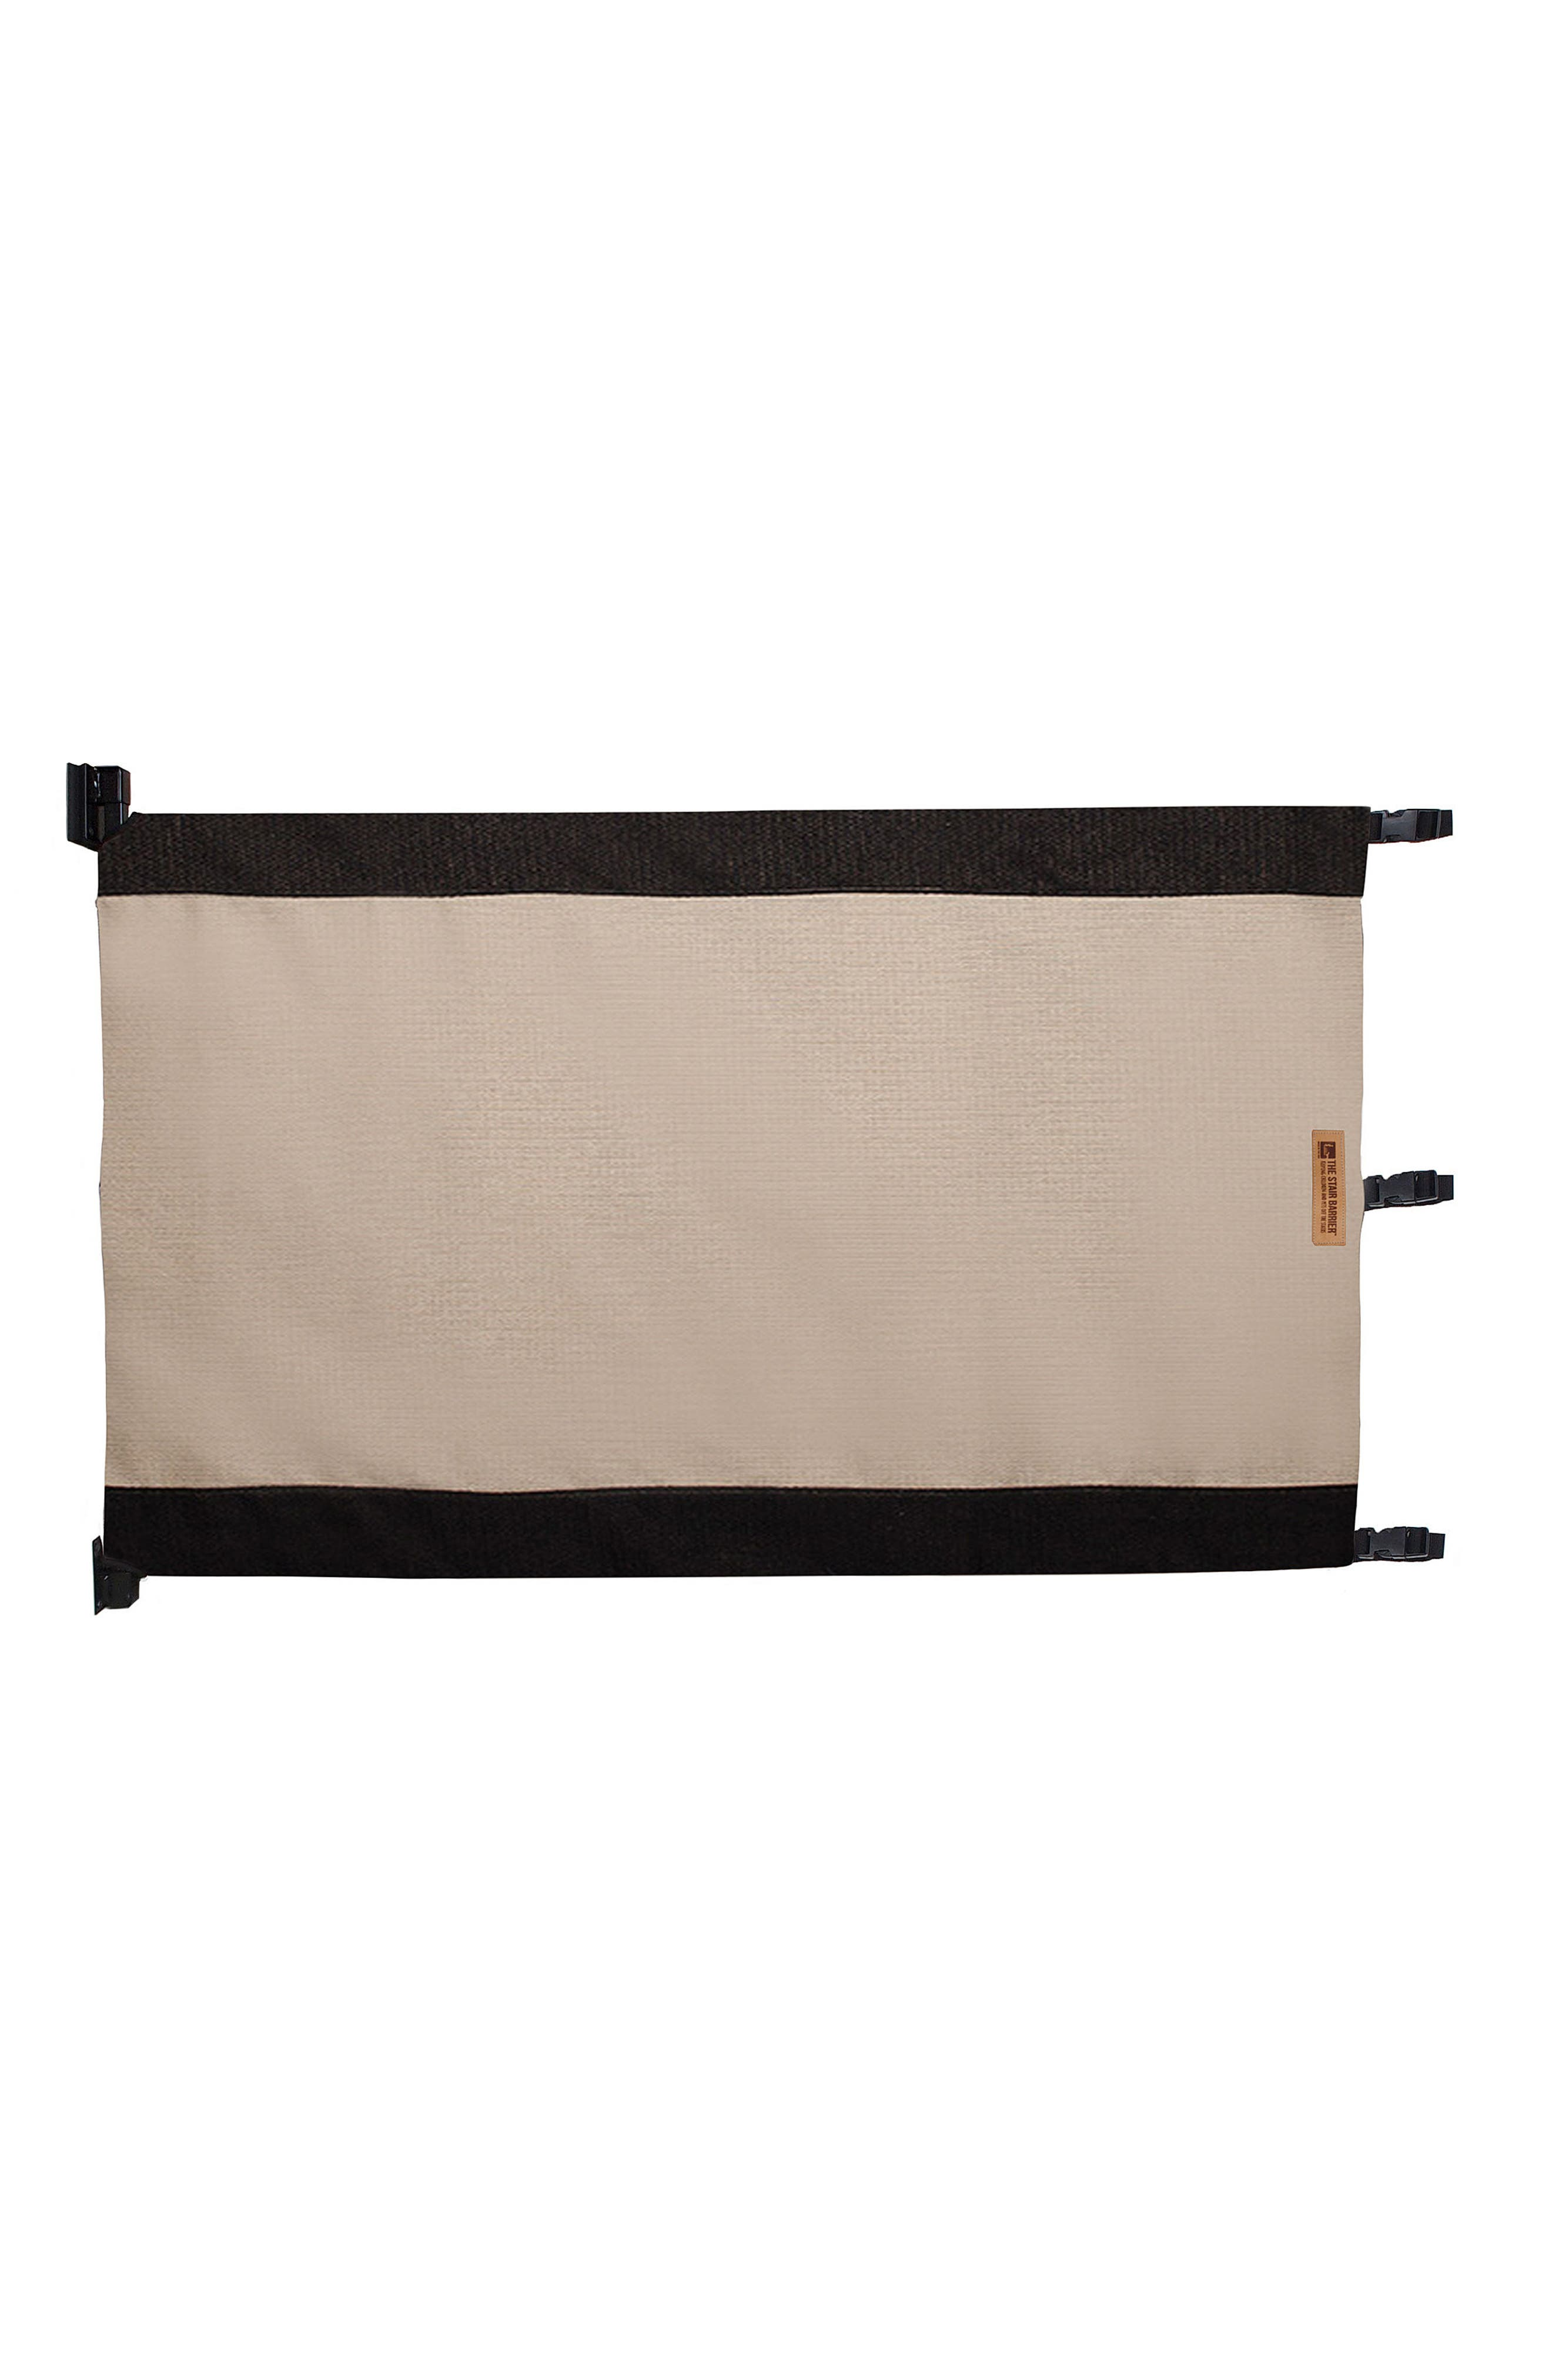 Wall to Banister Regular Width Safety Gate,                             Alternate thumbnail 2, color,                             Black And Tan